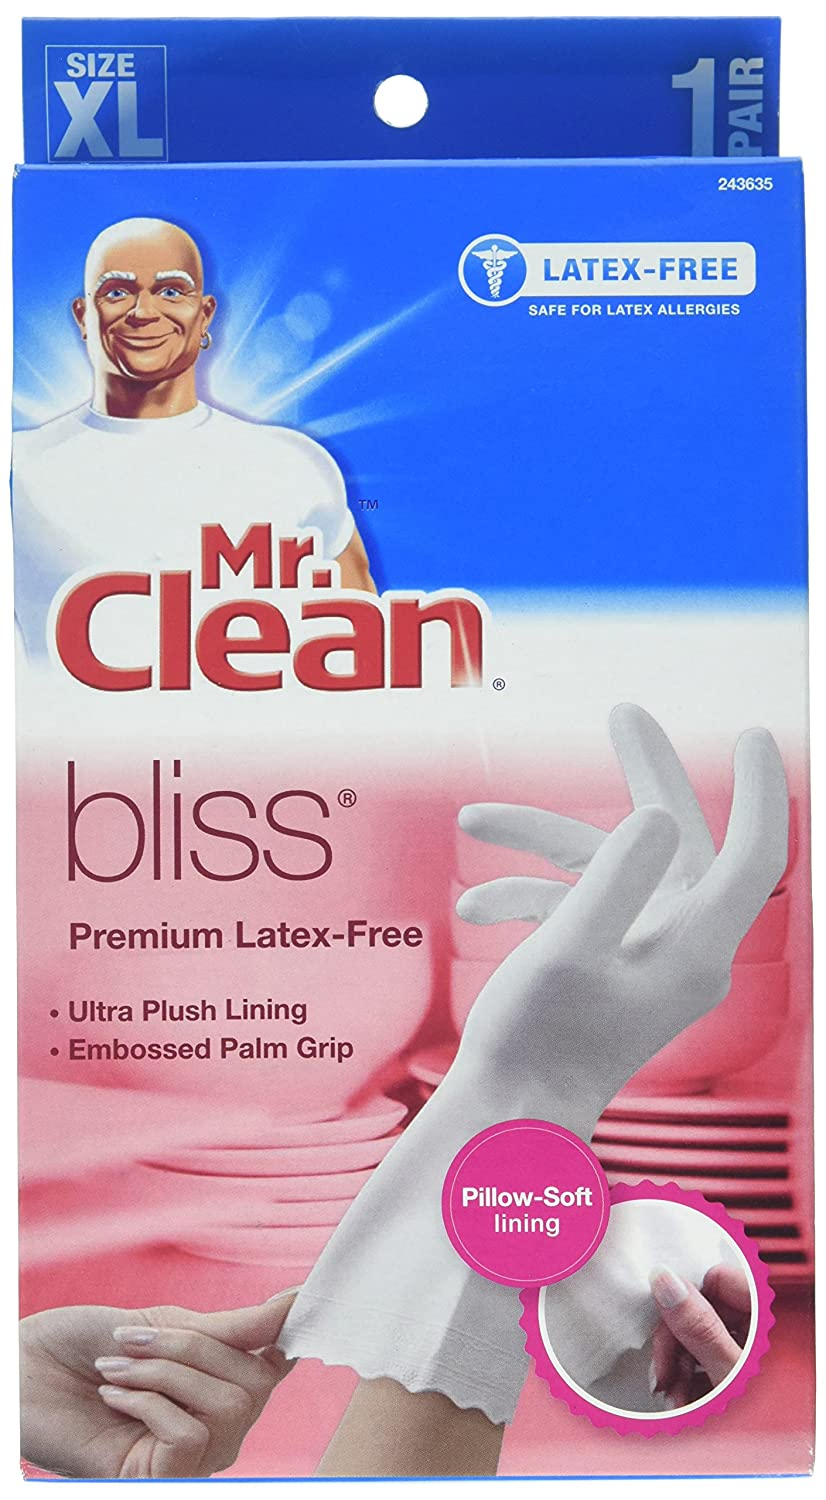 Mr. Clean, 243635 Bliss, Extra Large Latex Free, Vinyl, Soft Ultra Absorbent Lining, Non- Slip Swirl Grip Gloves, (XL) Butler Home Products